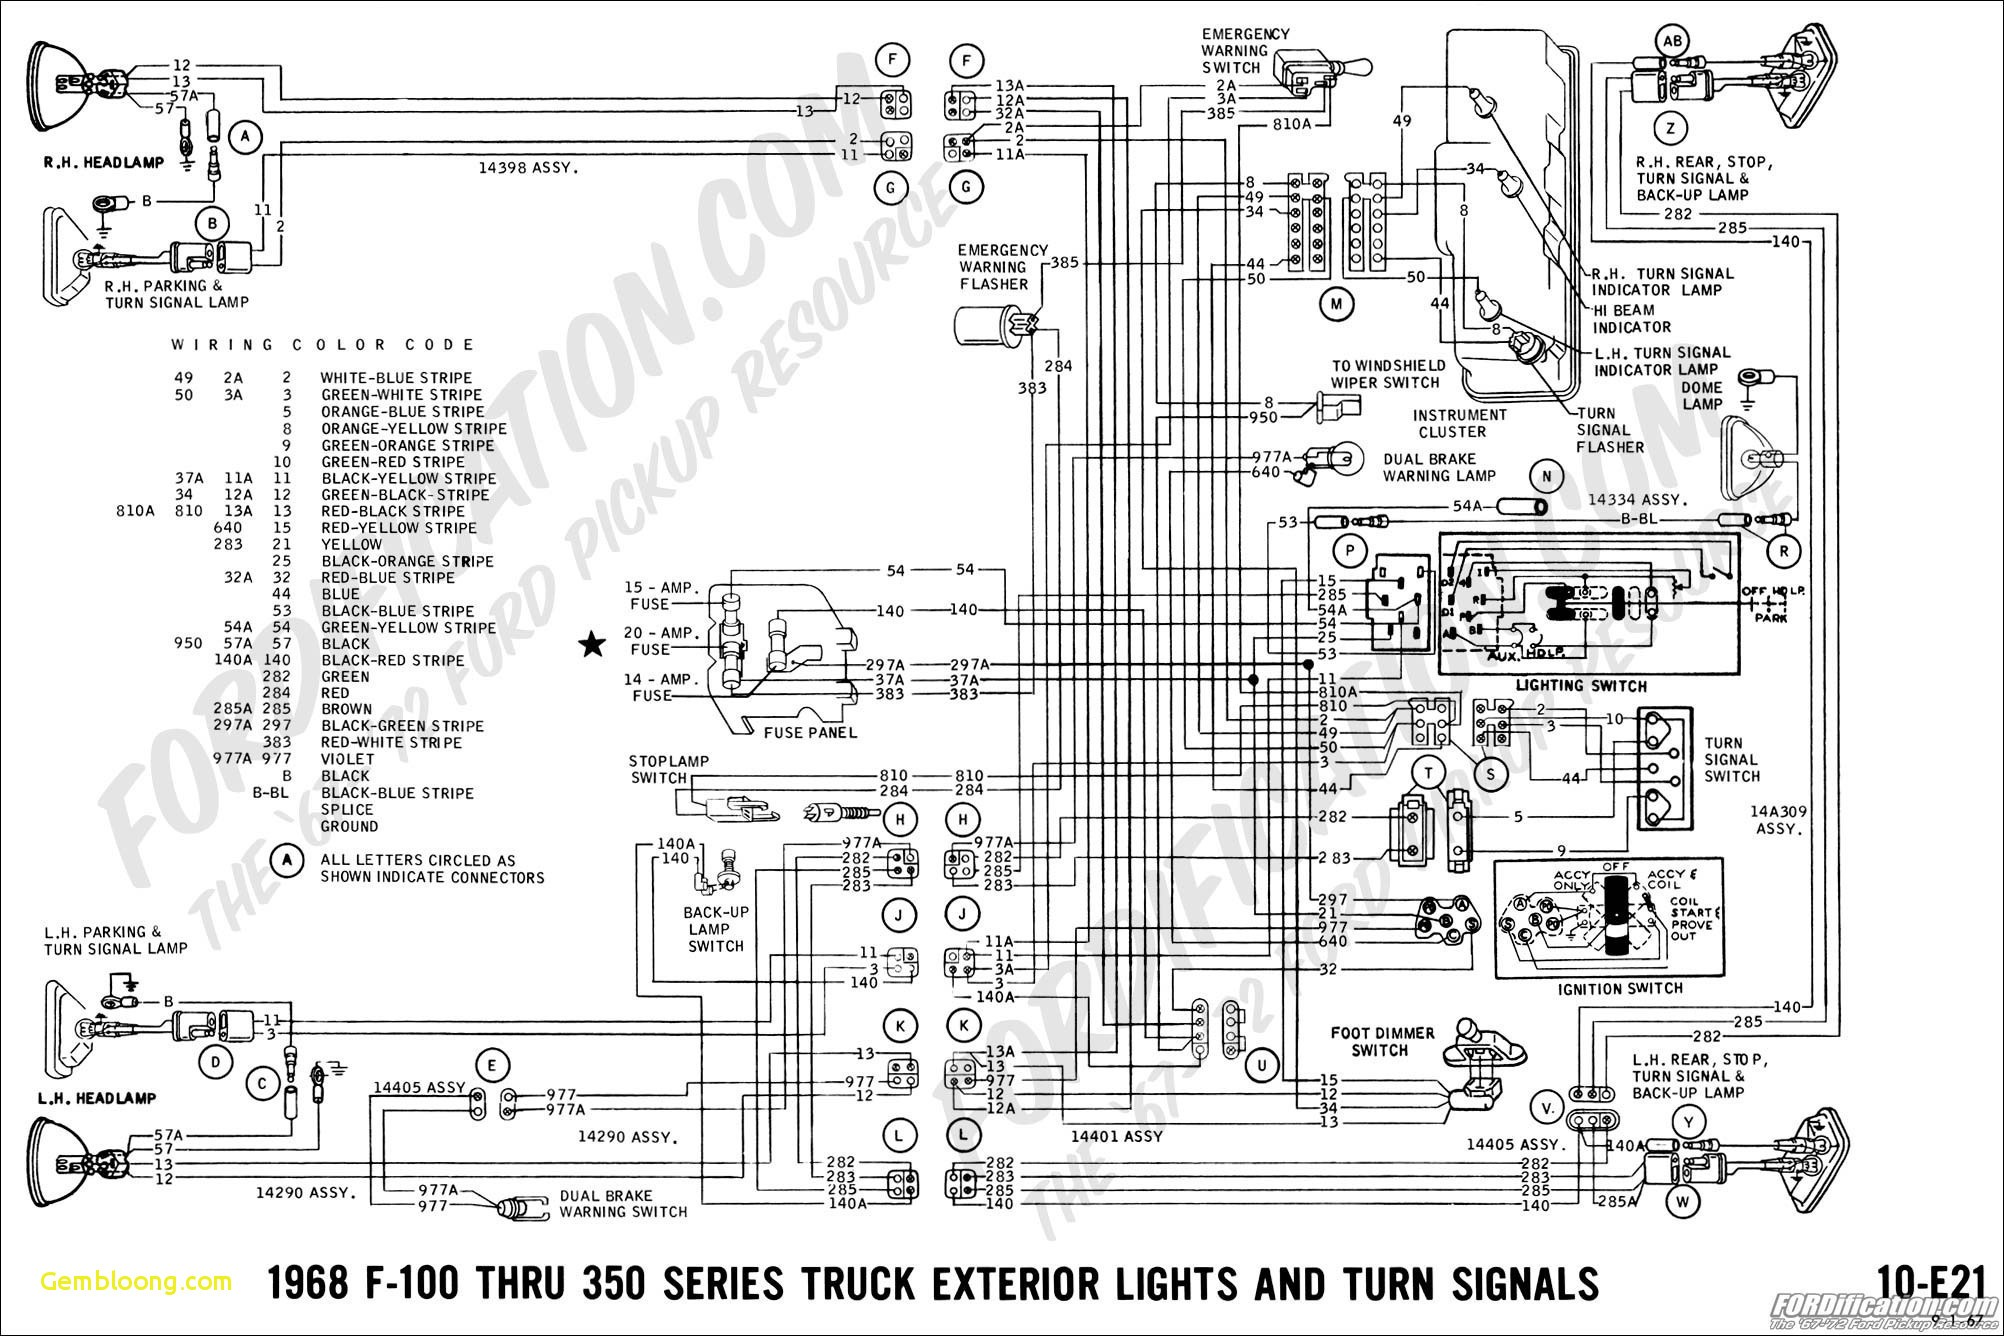 clic ford truck wiring harness wiring diagram data Jeep Wrangler Wiring ford f100 wiring harness wiring diagram detailed aftermarket stereo wiring harness diagram 1956 ford f100 wiring